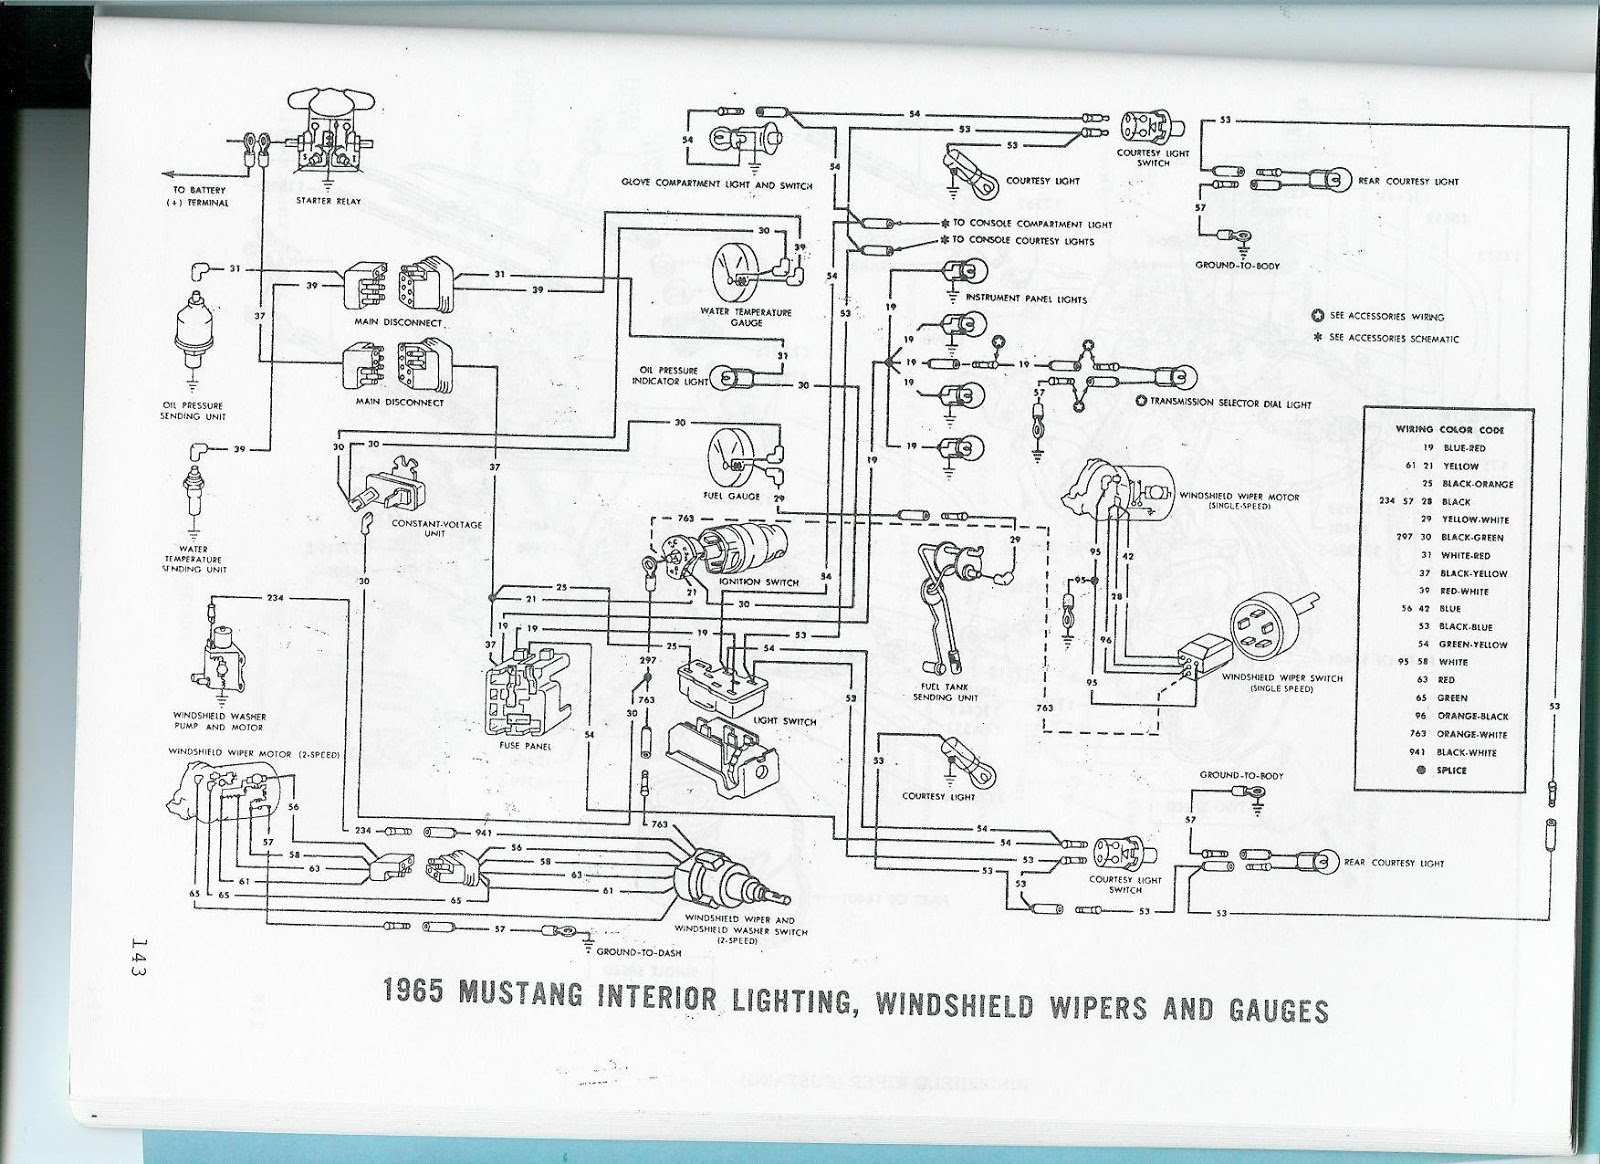 [SCHEMATICS_48IS]  1970 Mustang Radio Wiring Diagram | Wiring Library | 1966 Mustang Instrument Wiring Diagram |  | Wiring Library